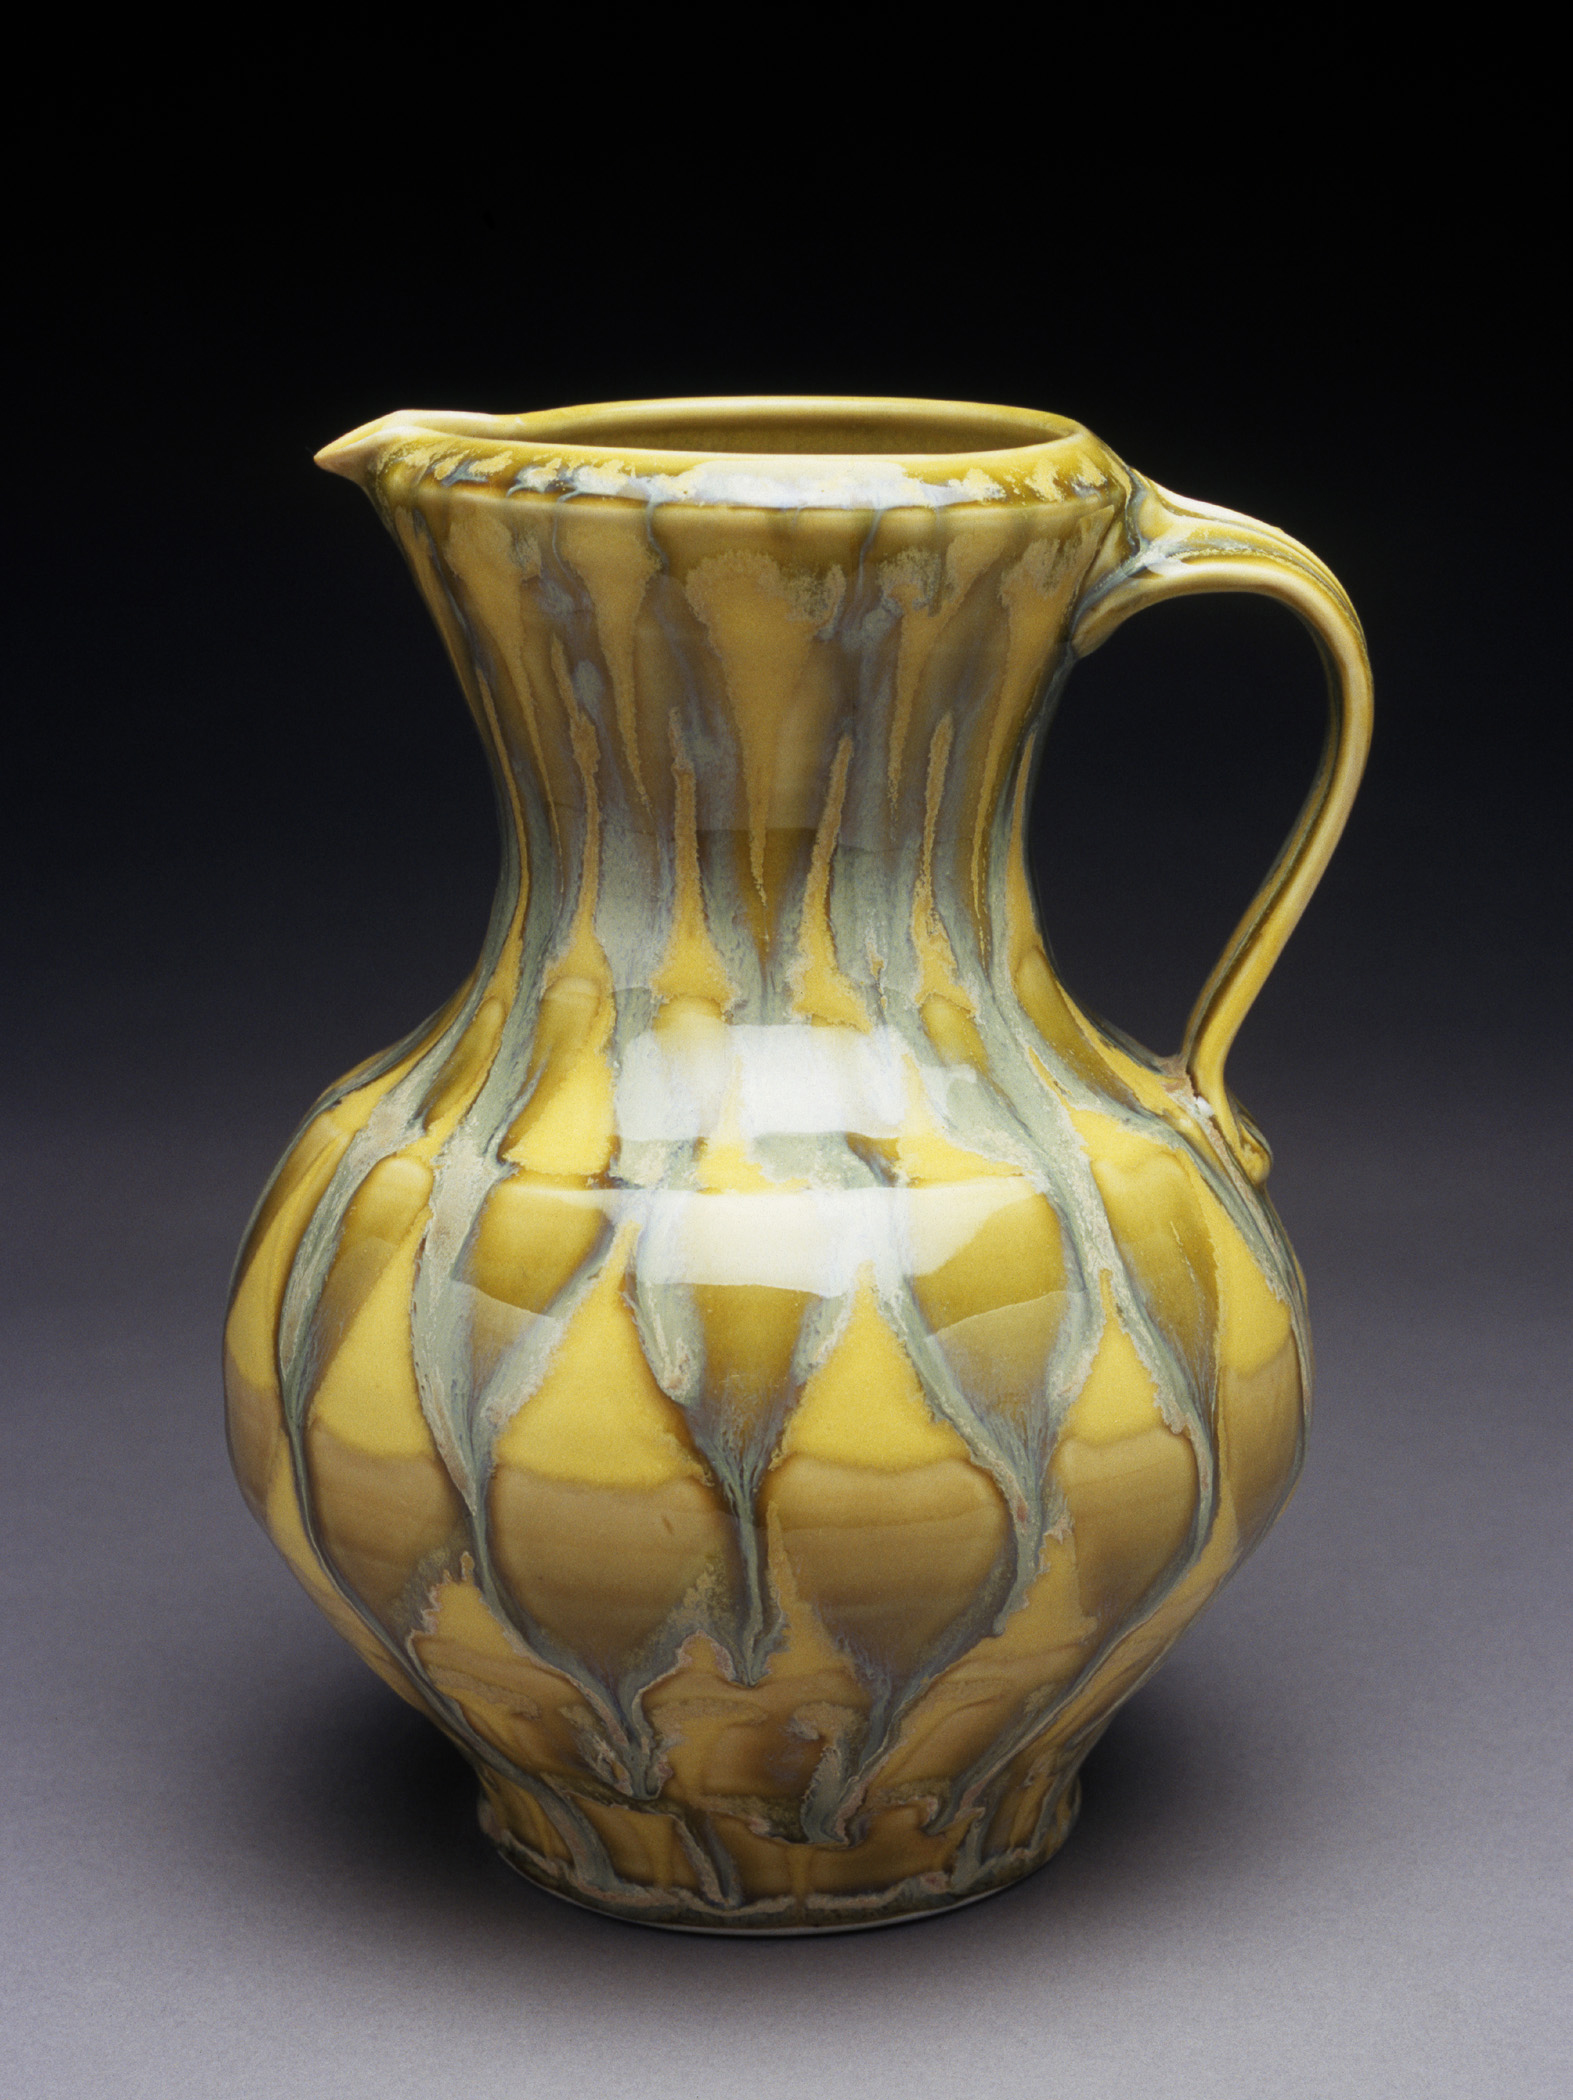 SARAH JAEGER, YELLOW PITCHER, PHOTO: Dean Adams, COMMUNITY episode